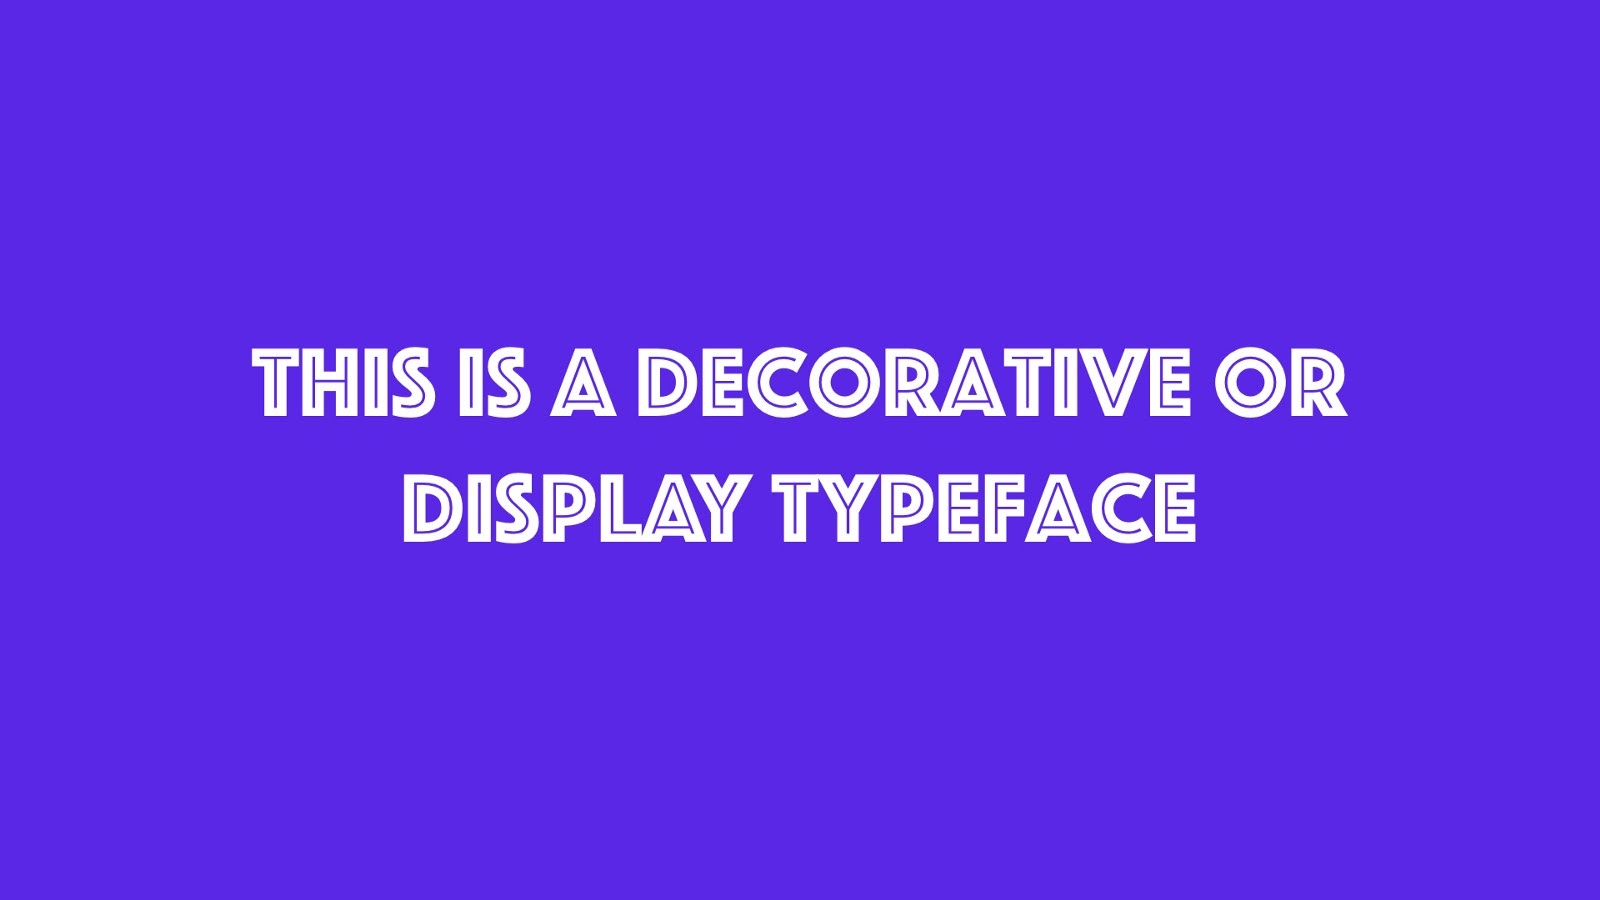 This is an example of a decorative typeface